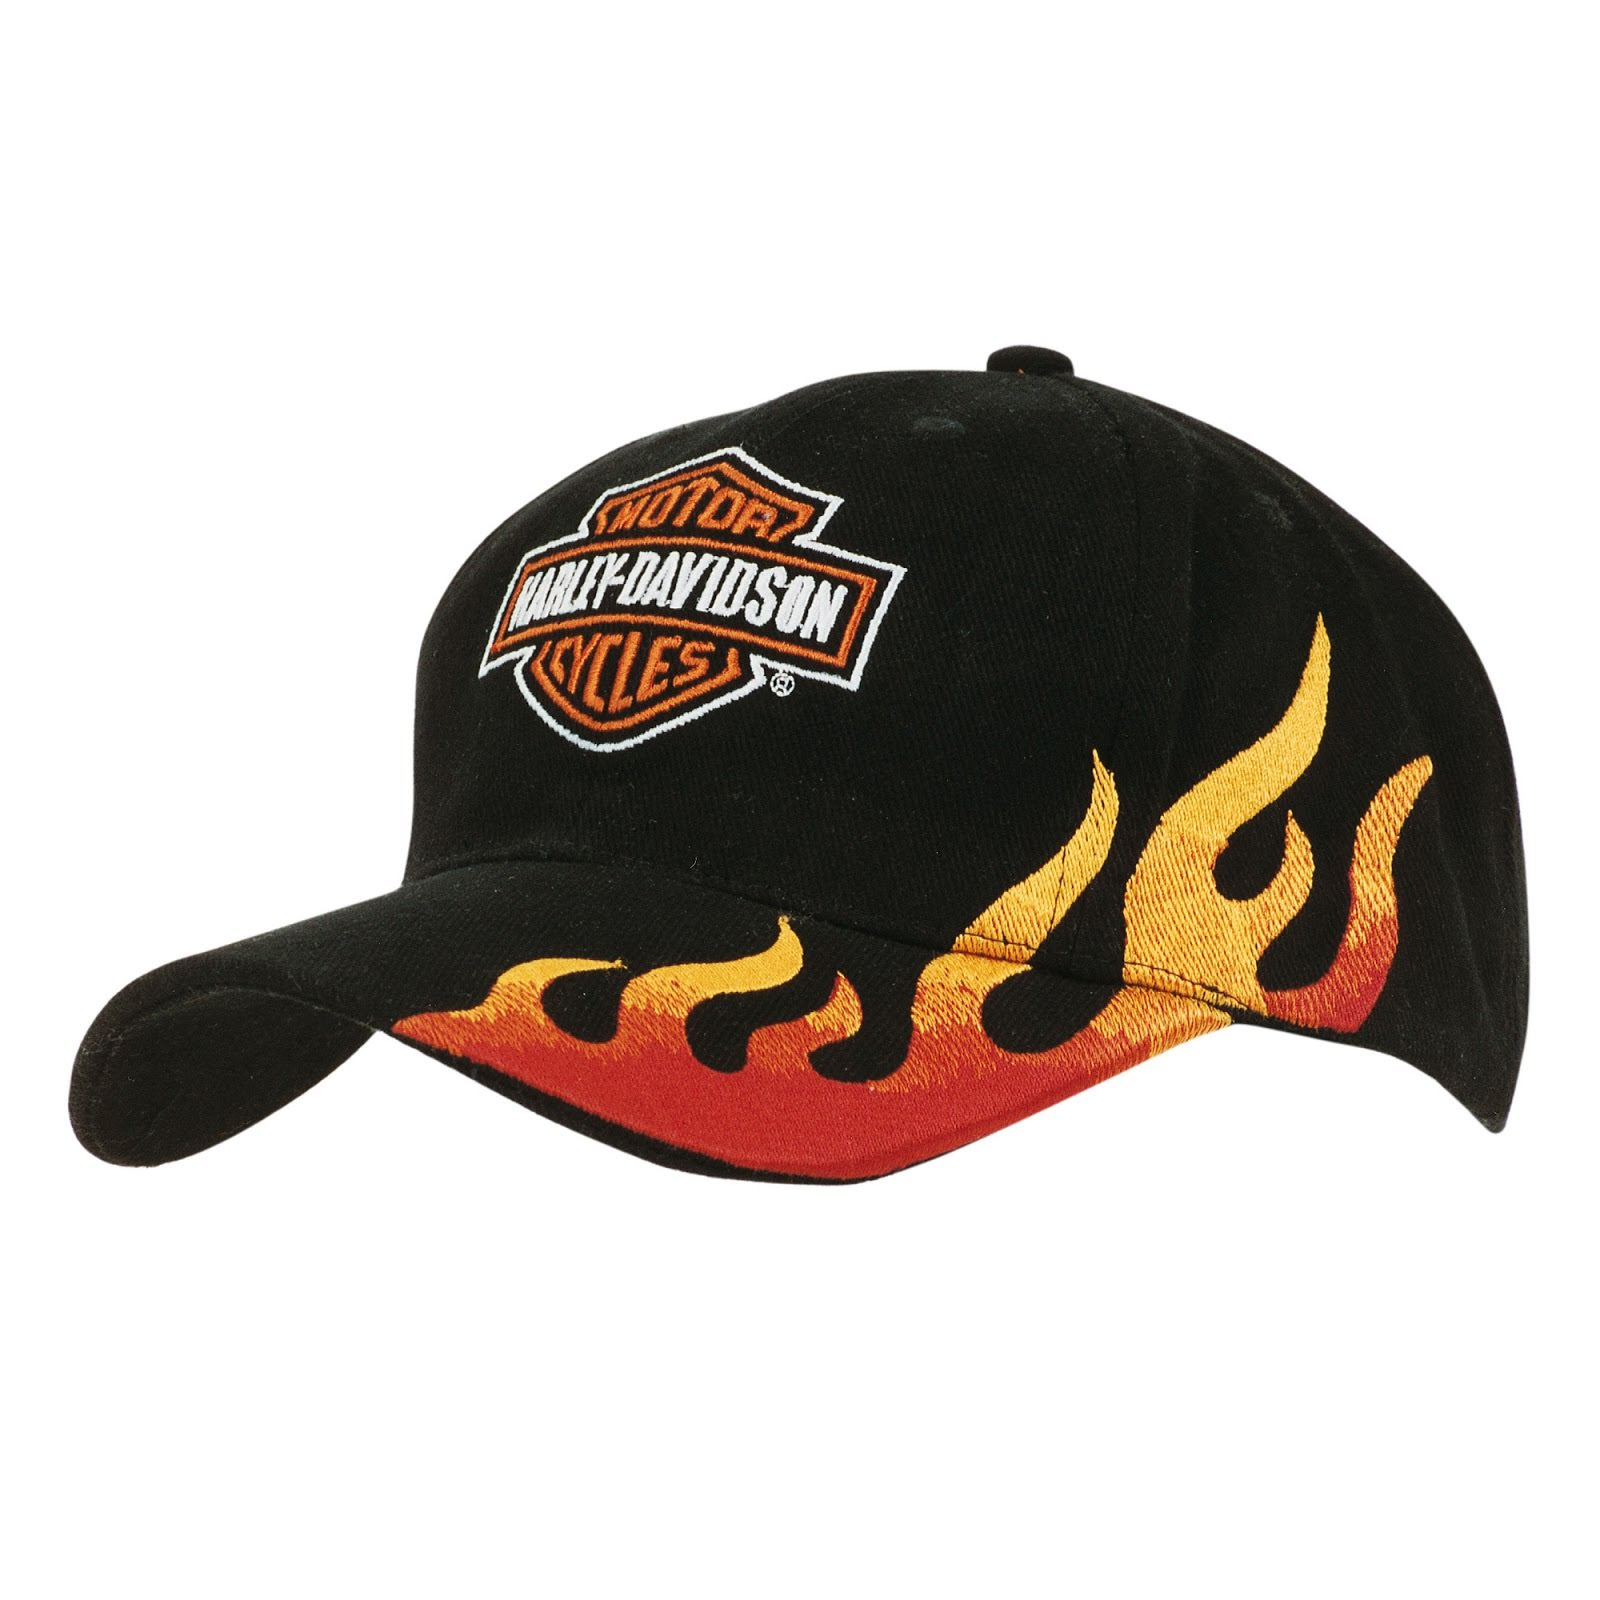 Promotional Embroidered Baseball Caps